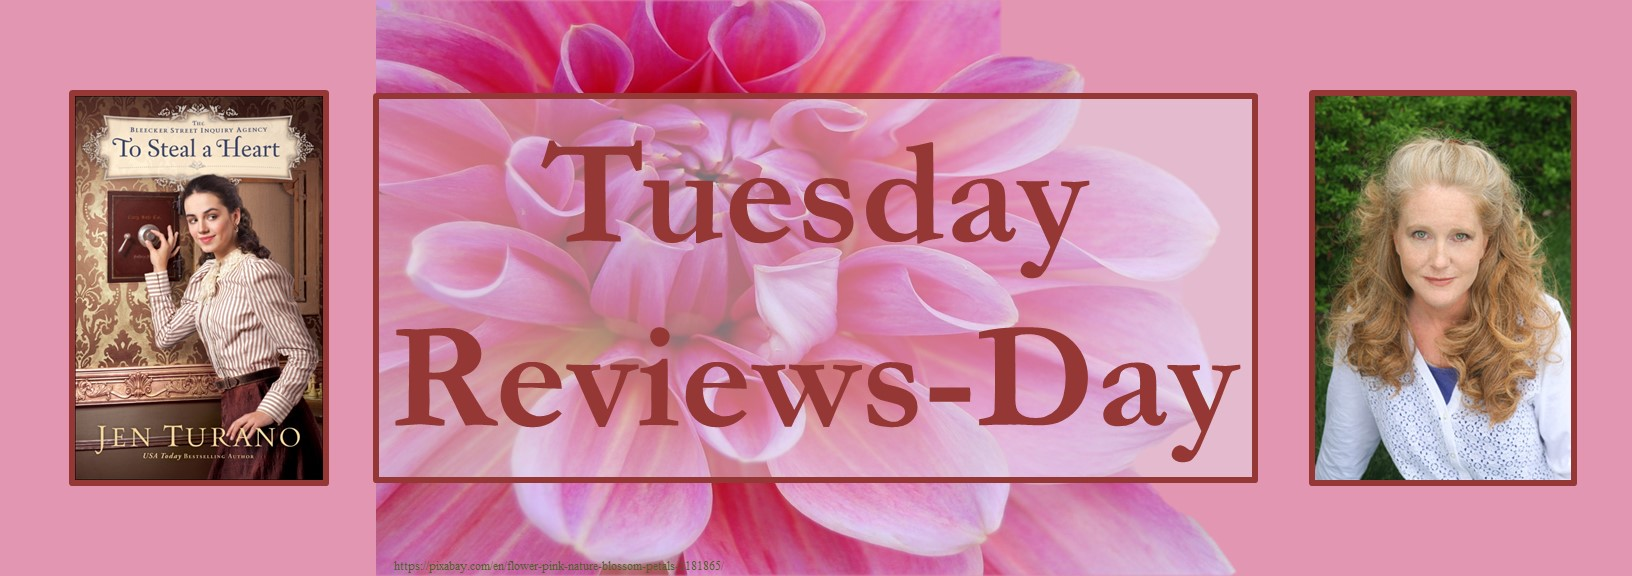 111720 - to steal a heart - tuesday reviews day banner